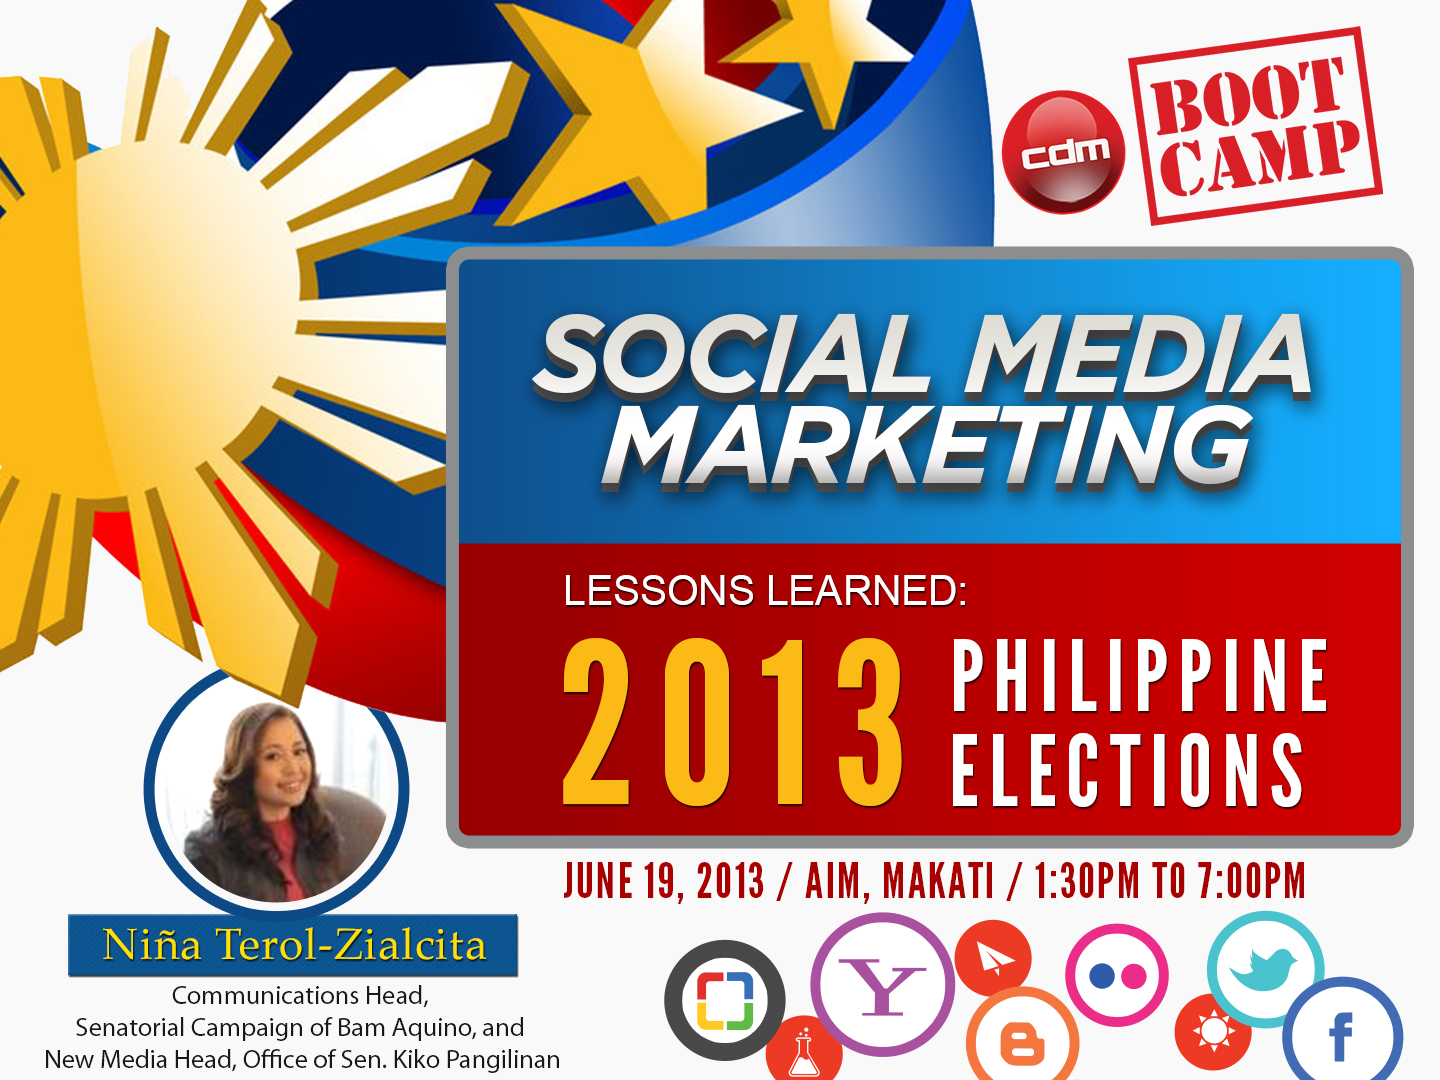 CDM Bootcamp - Social Media Marketing - Lessons learned from the 2013 elections (with Niña Terol-Zialcita)